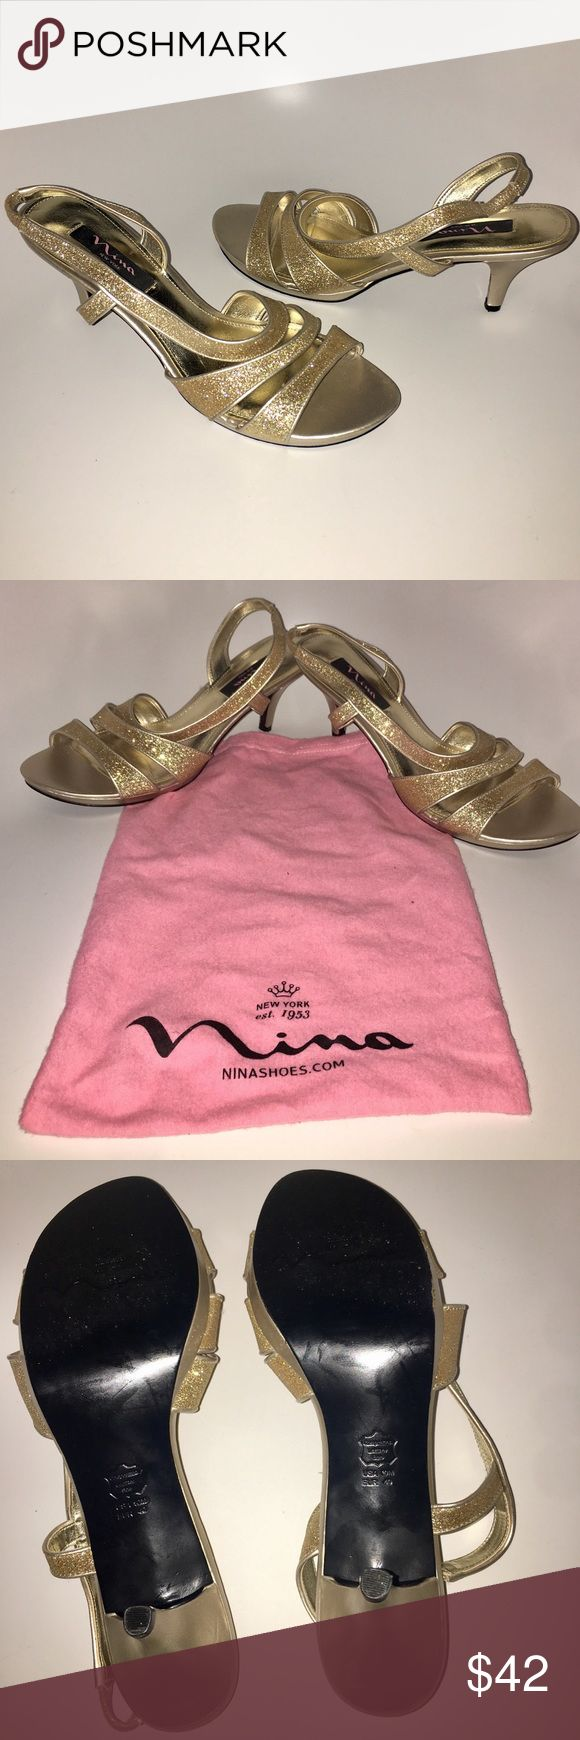 Gorgeous Sparkly Gold Open Toe Pumps These gorgeous shoes have glittery gold details. You can wear to dress up or use to accessorize with your favorite pair of jeans or skirt.  •Nina •Size 10 •Comes With Dust Bag •Worn Only One Time Touch of Nina Shoes Heels